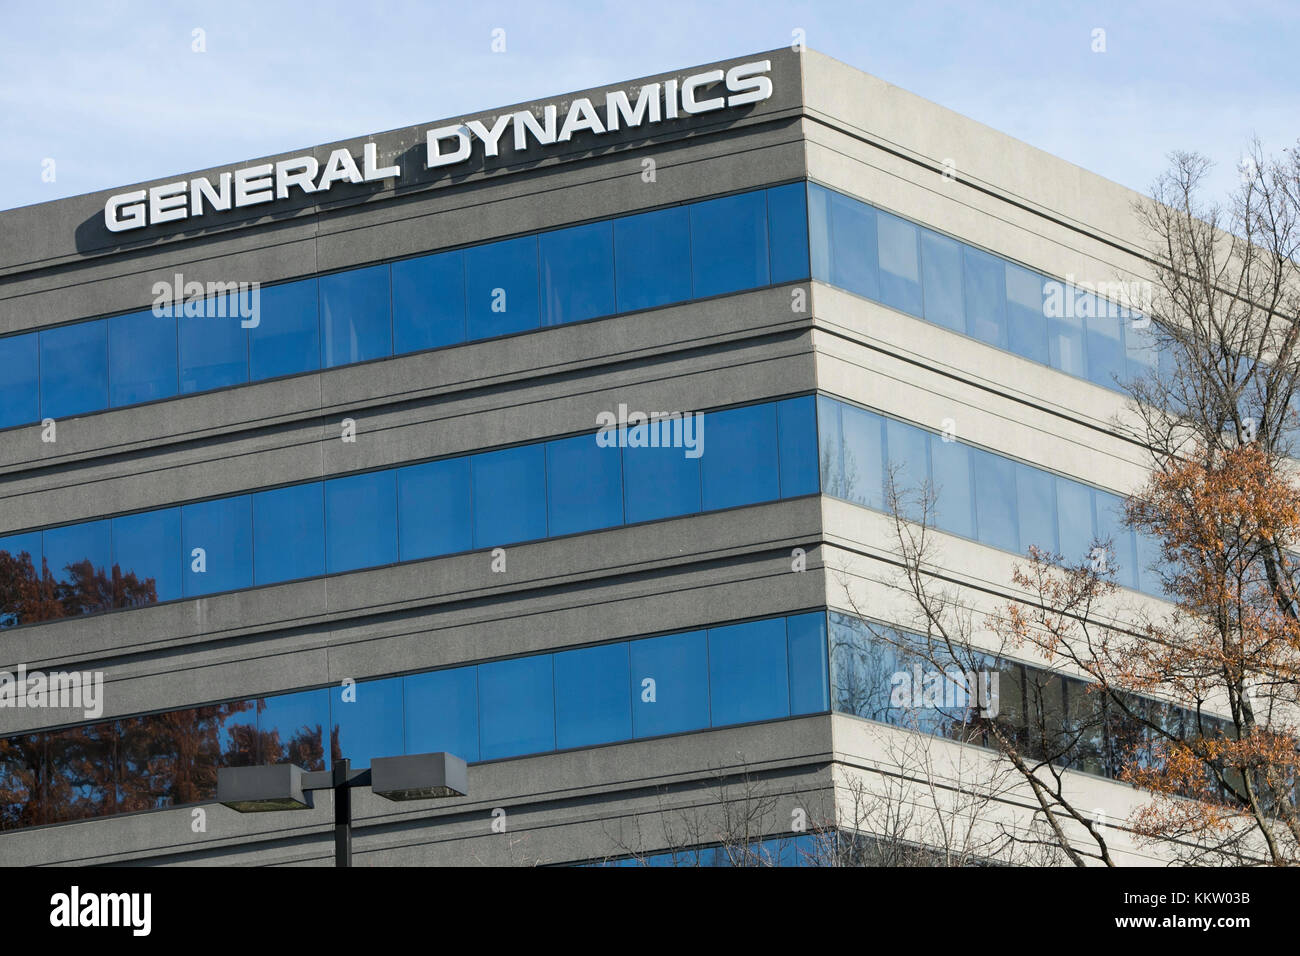 A logo sign outside of a facility occupied by General Dynamics in